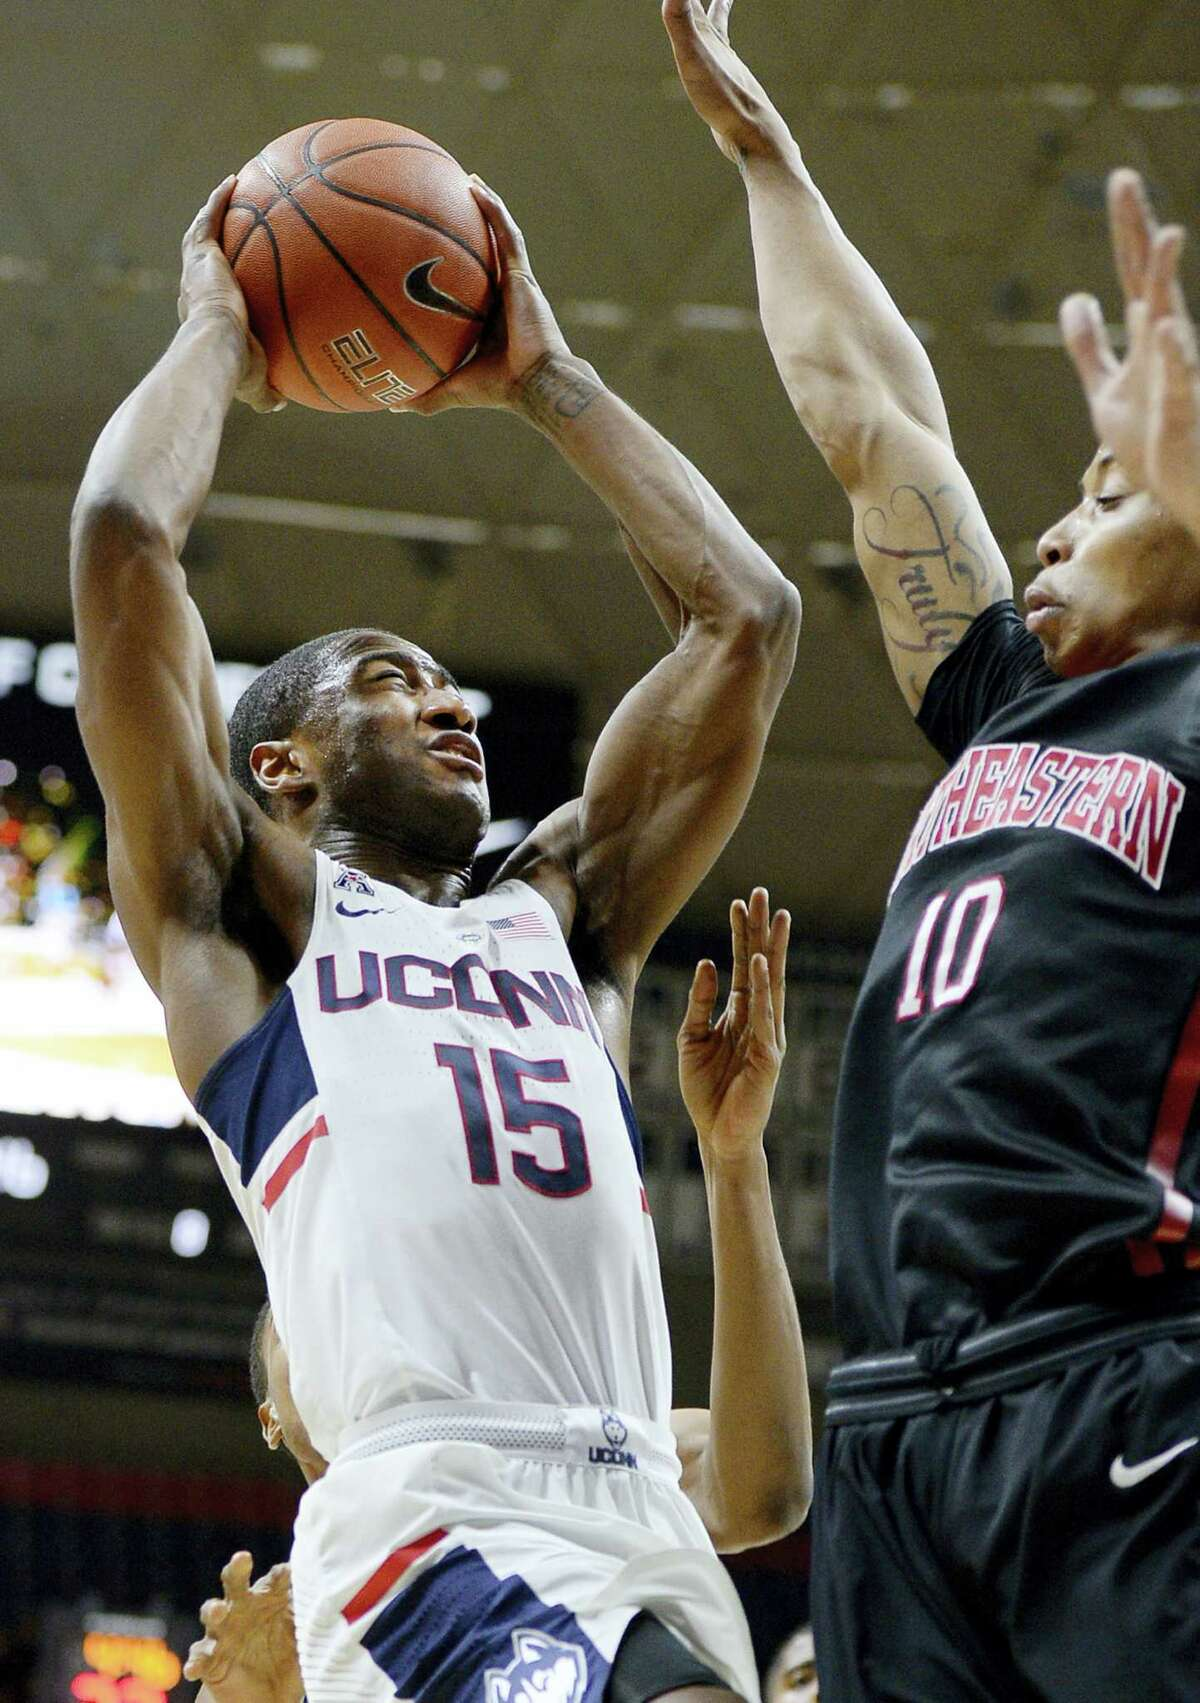 UConn's Rodney Purvis drives to the basket during a recent game.